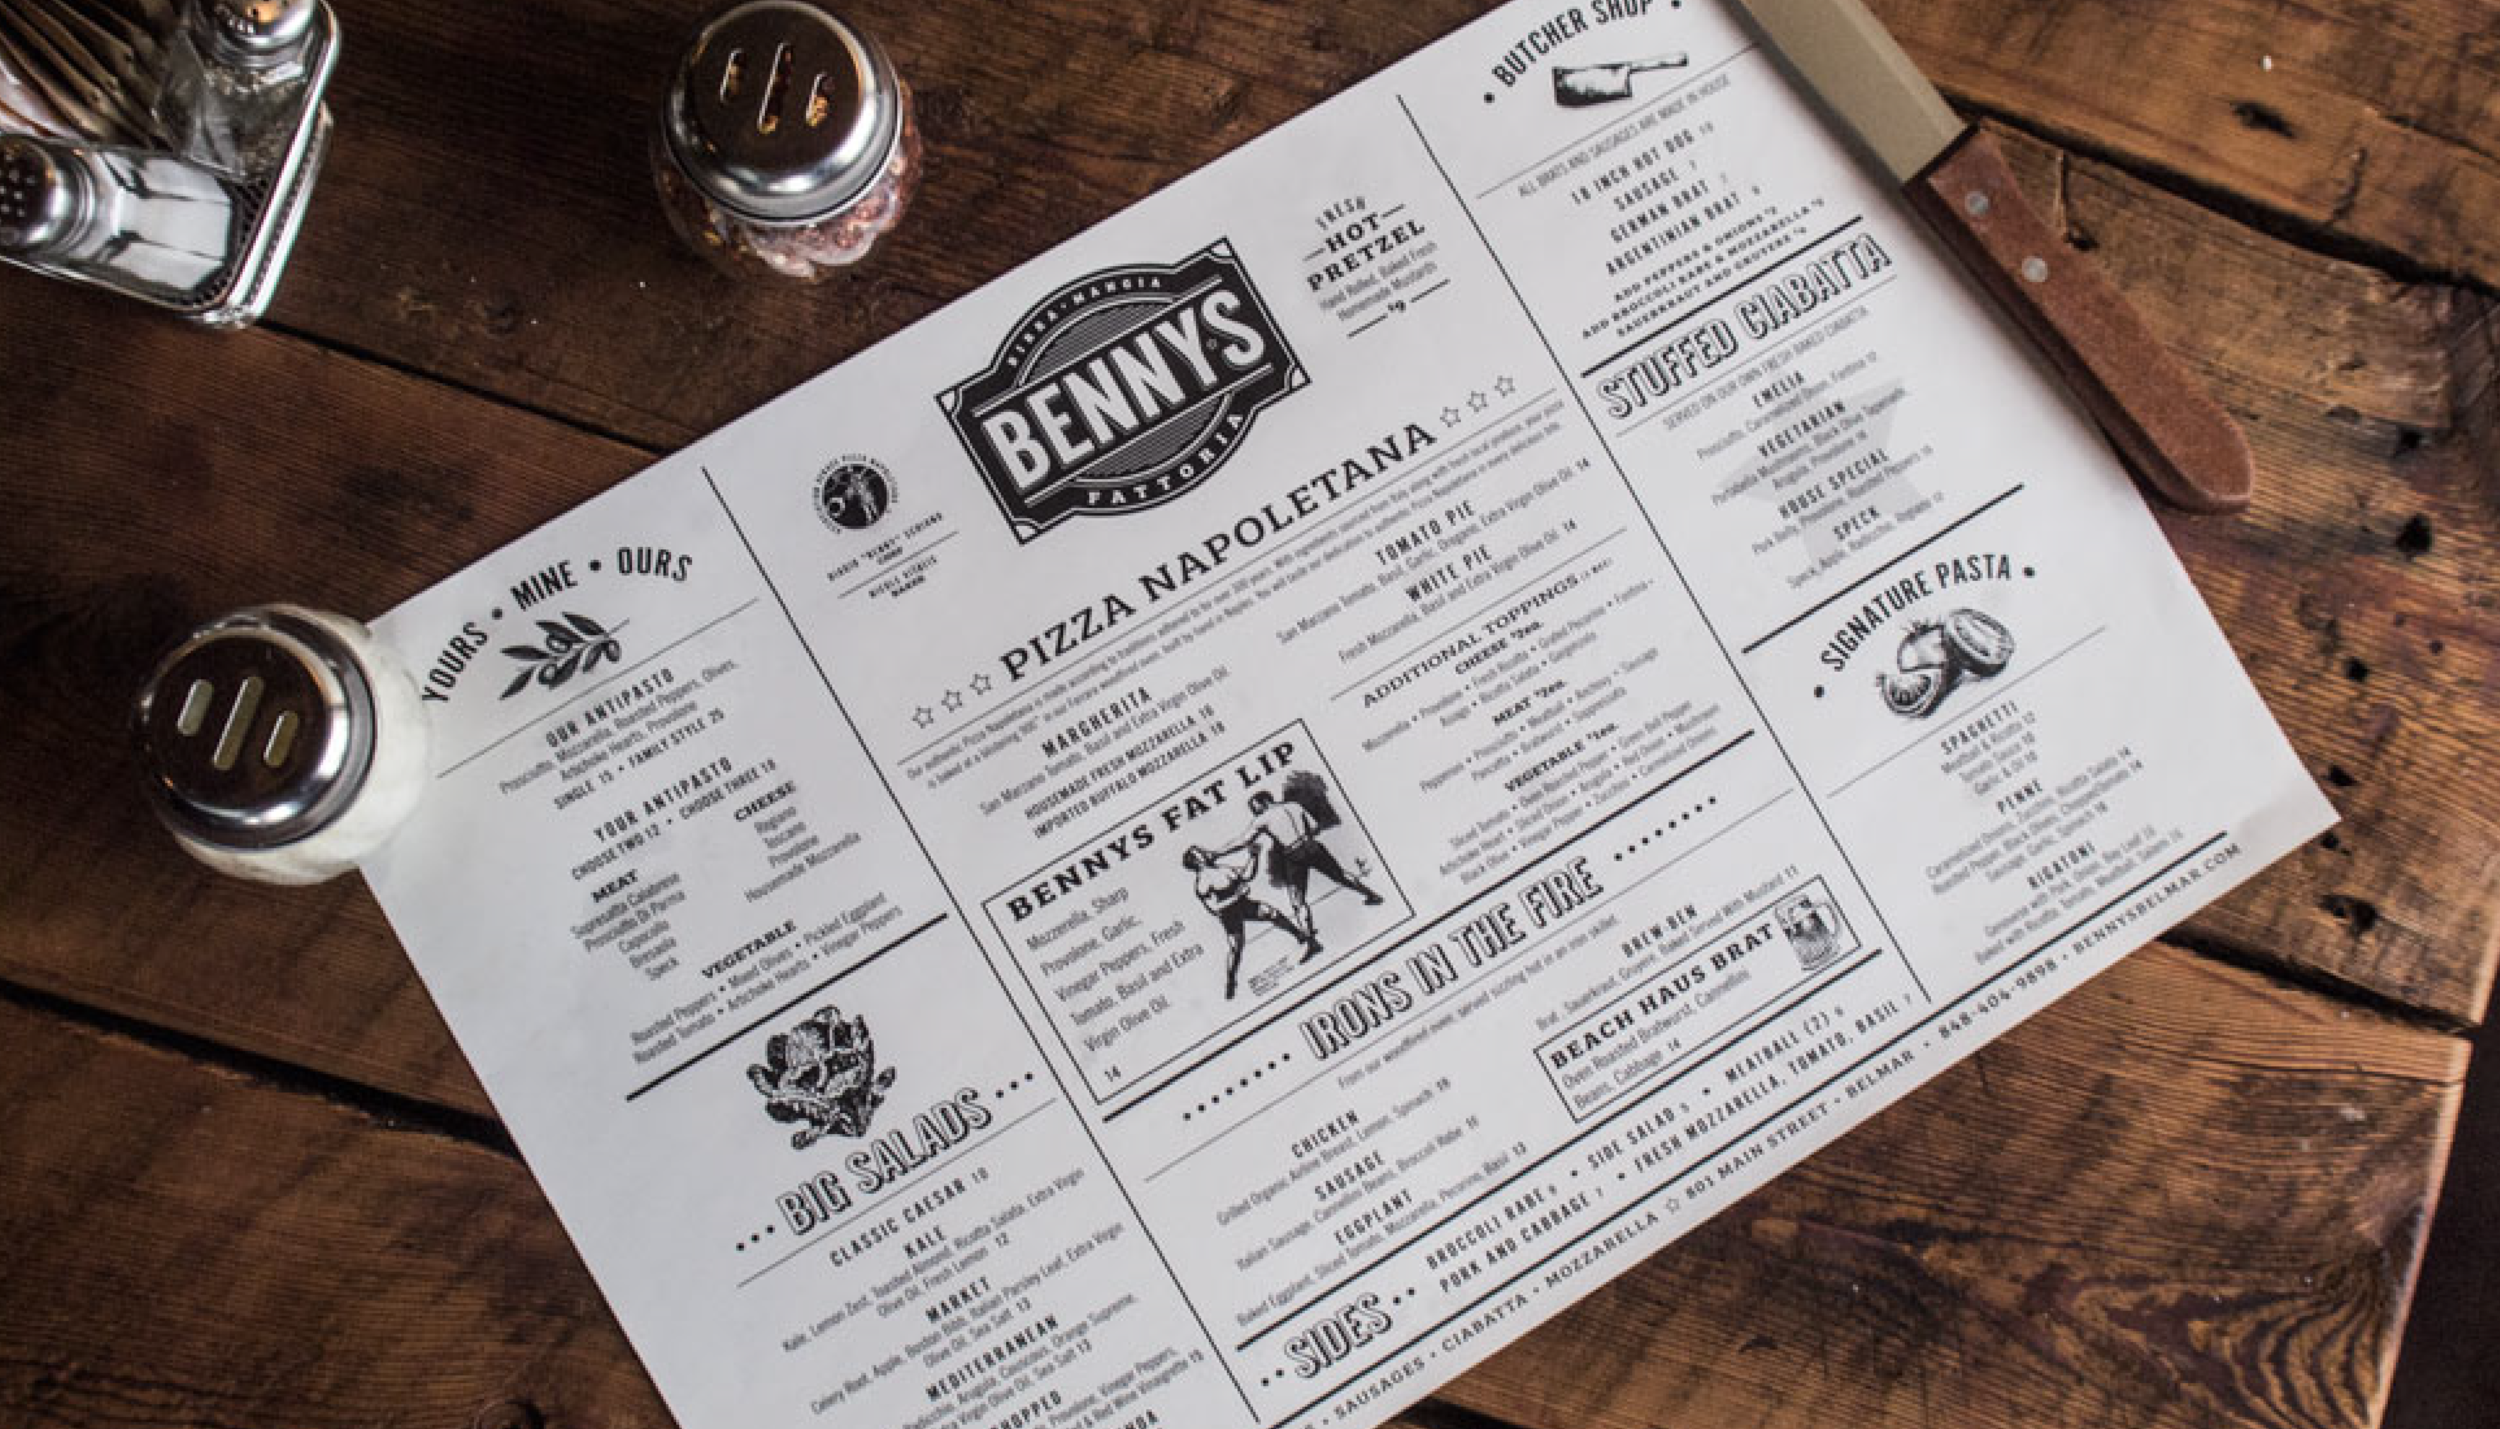 brand-strategy-menu-graphic-design-nyc-nj-grass-creative-bennys-fattoria-belmar.jpg